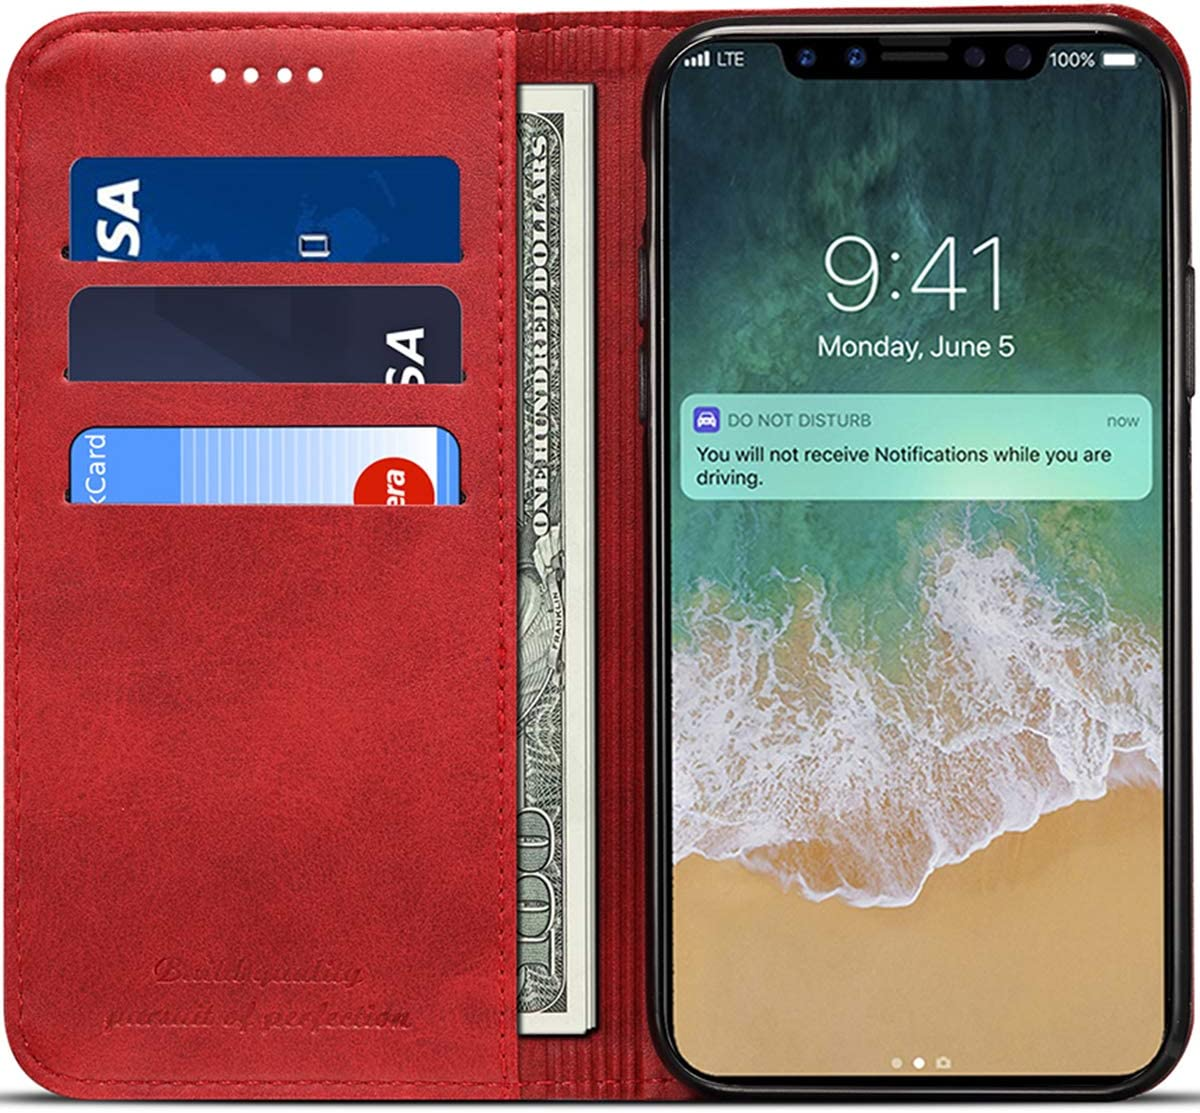 Wallet Case Compatible 2018 iPhone Xs/ 2017 iPhone X, PU Leather Wallet Case Folio Flip Cover, Red, 5.8 inches